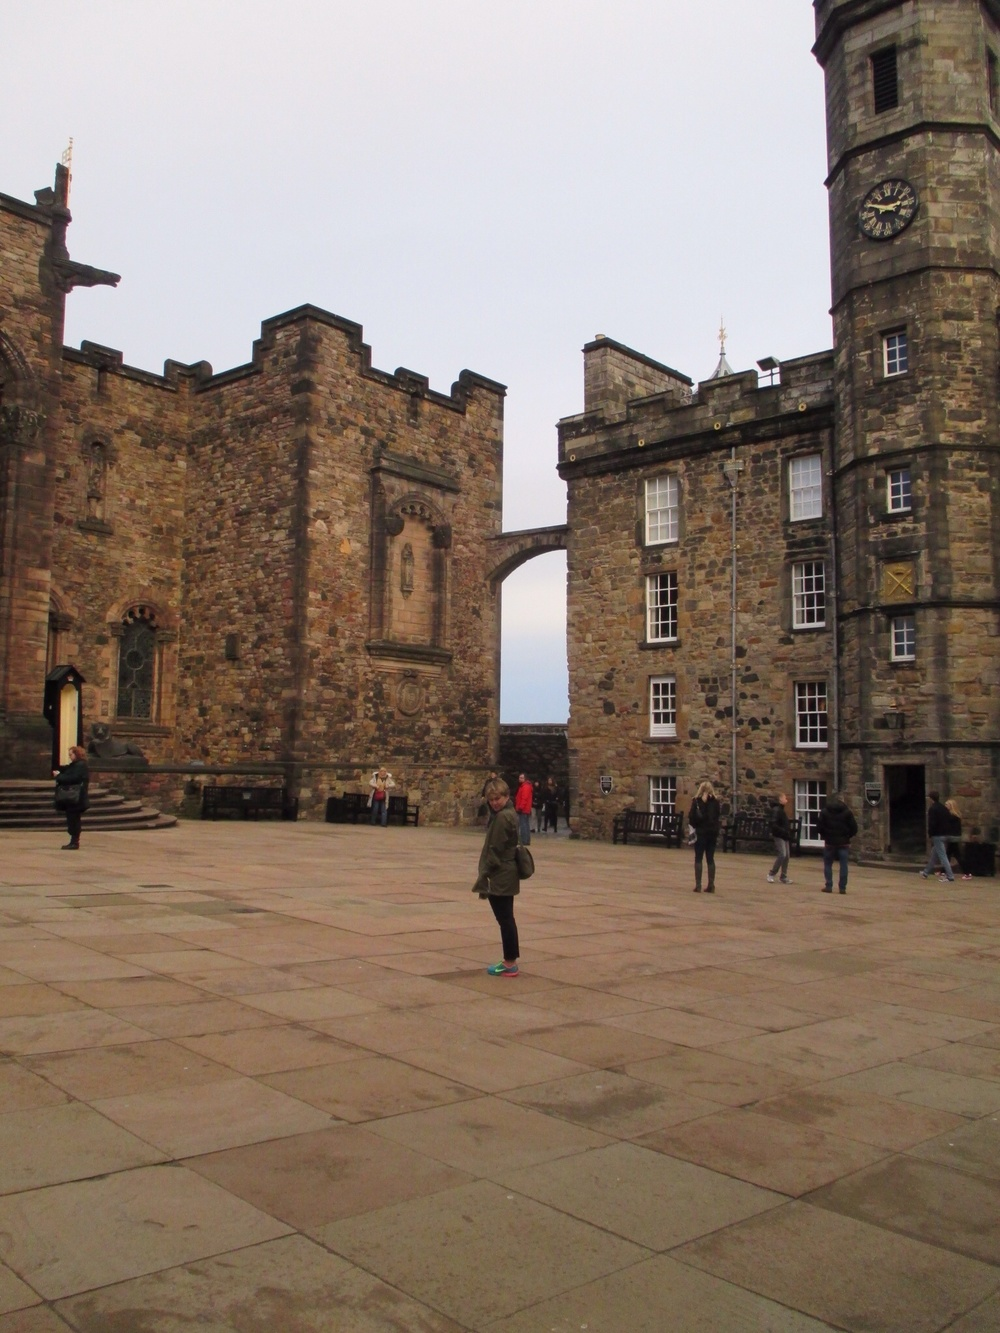 Samantha in the central square of Edinburgh Castle